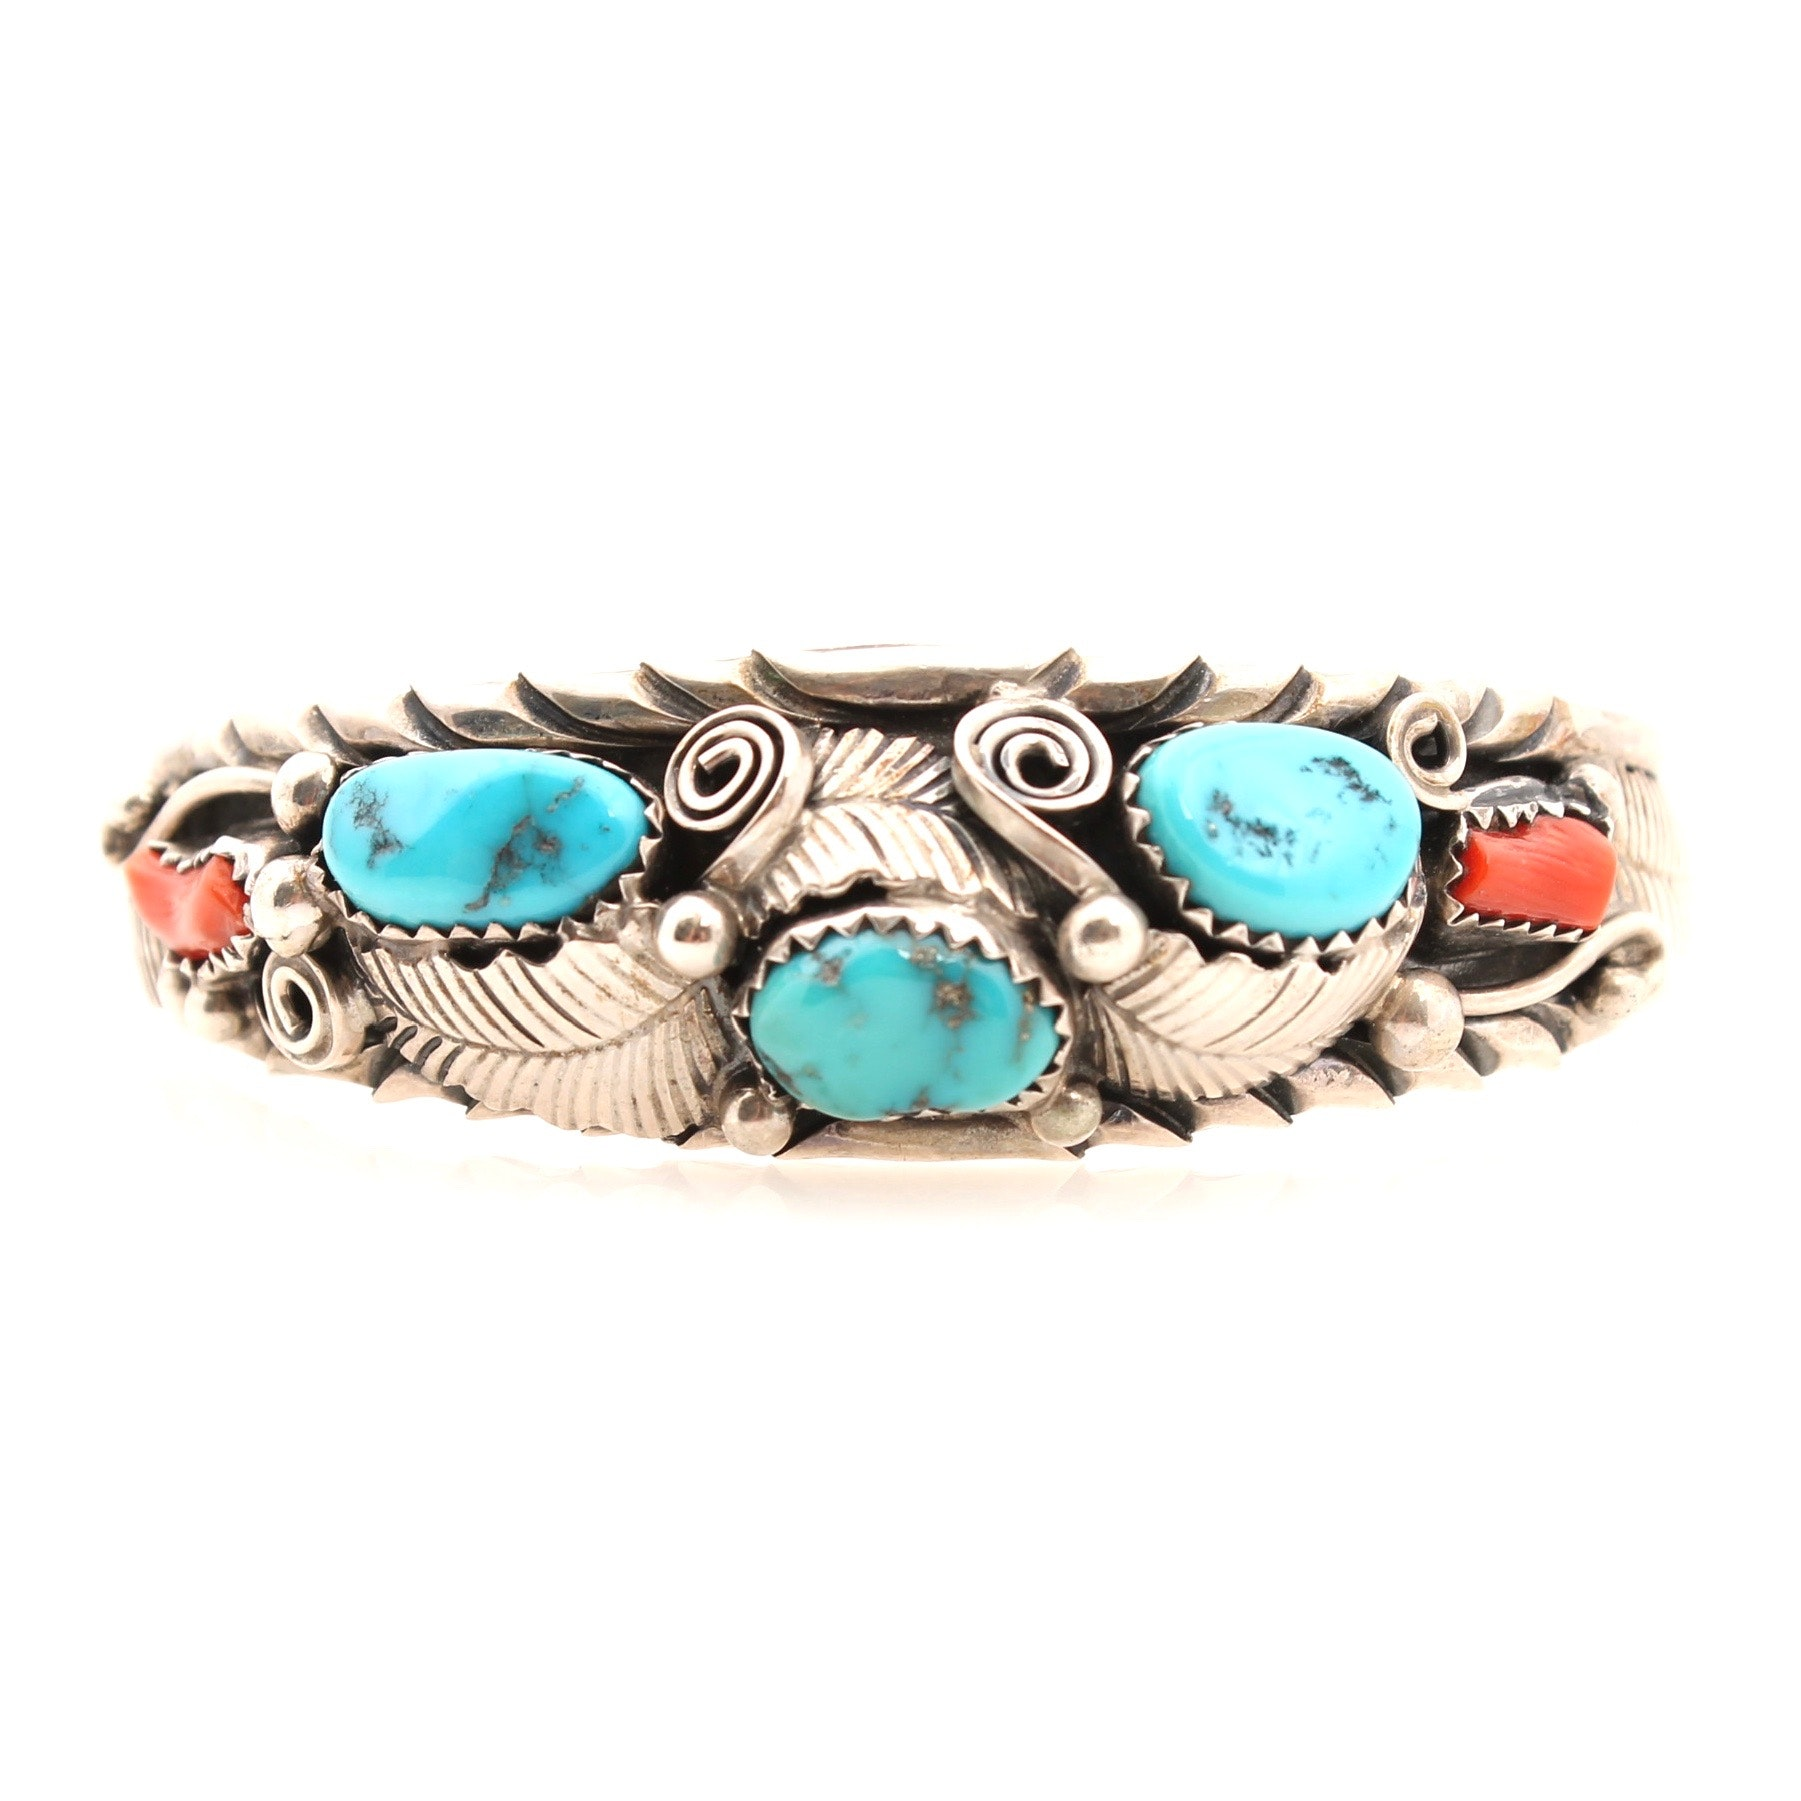 R. Shakey Sterling Silver Coral and Dyed Turquoise Cuff